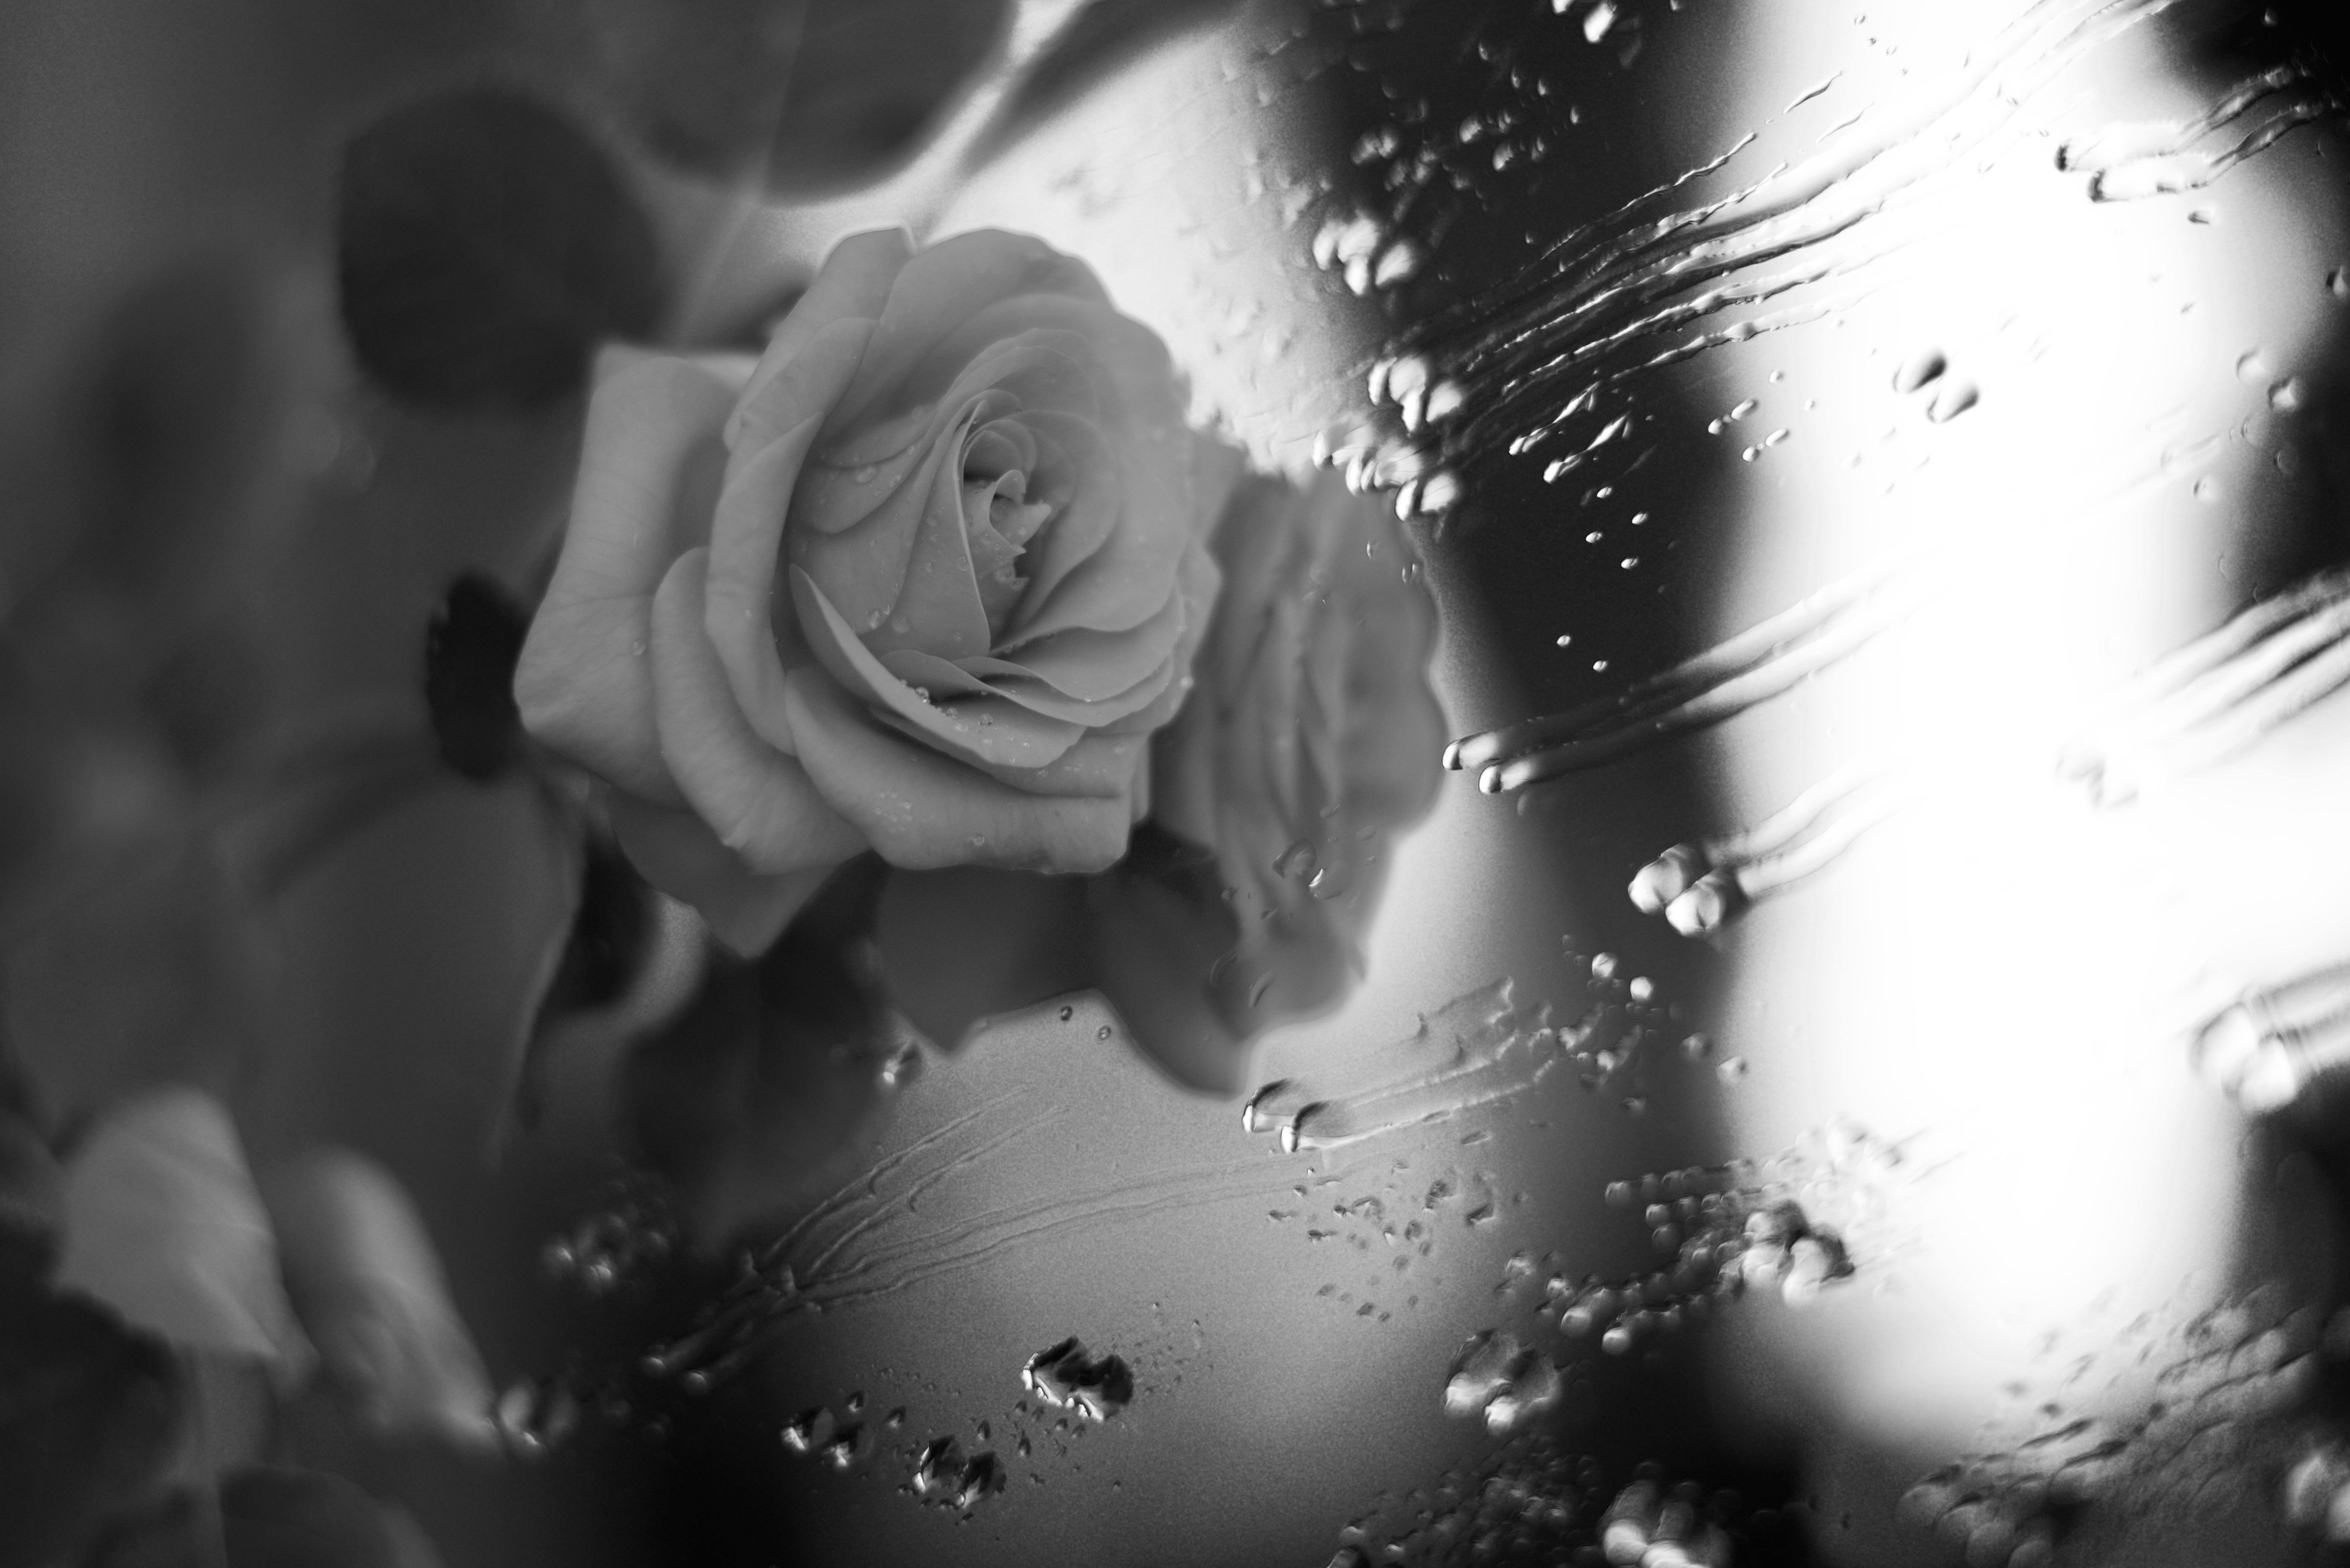 Rose near a window with rain drops 5k retina ultra hd wallpaper and photography black white rose flower water drop wallpaper altavistaventures Image collections